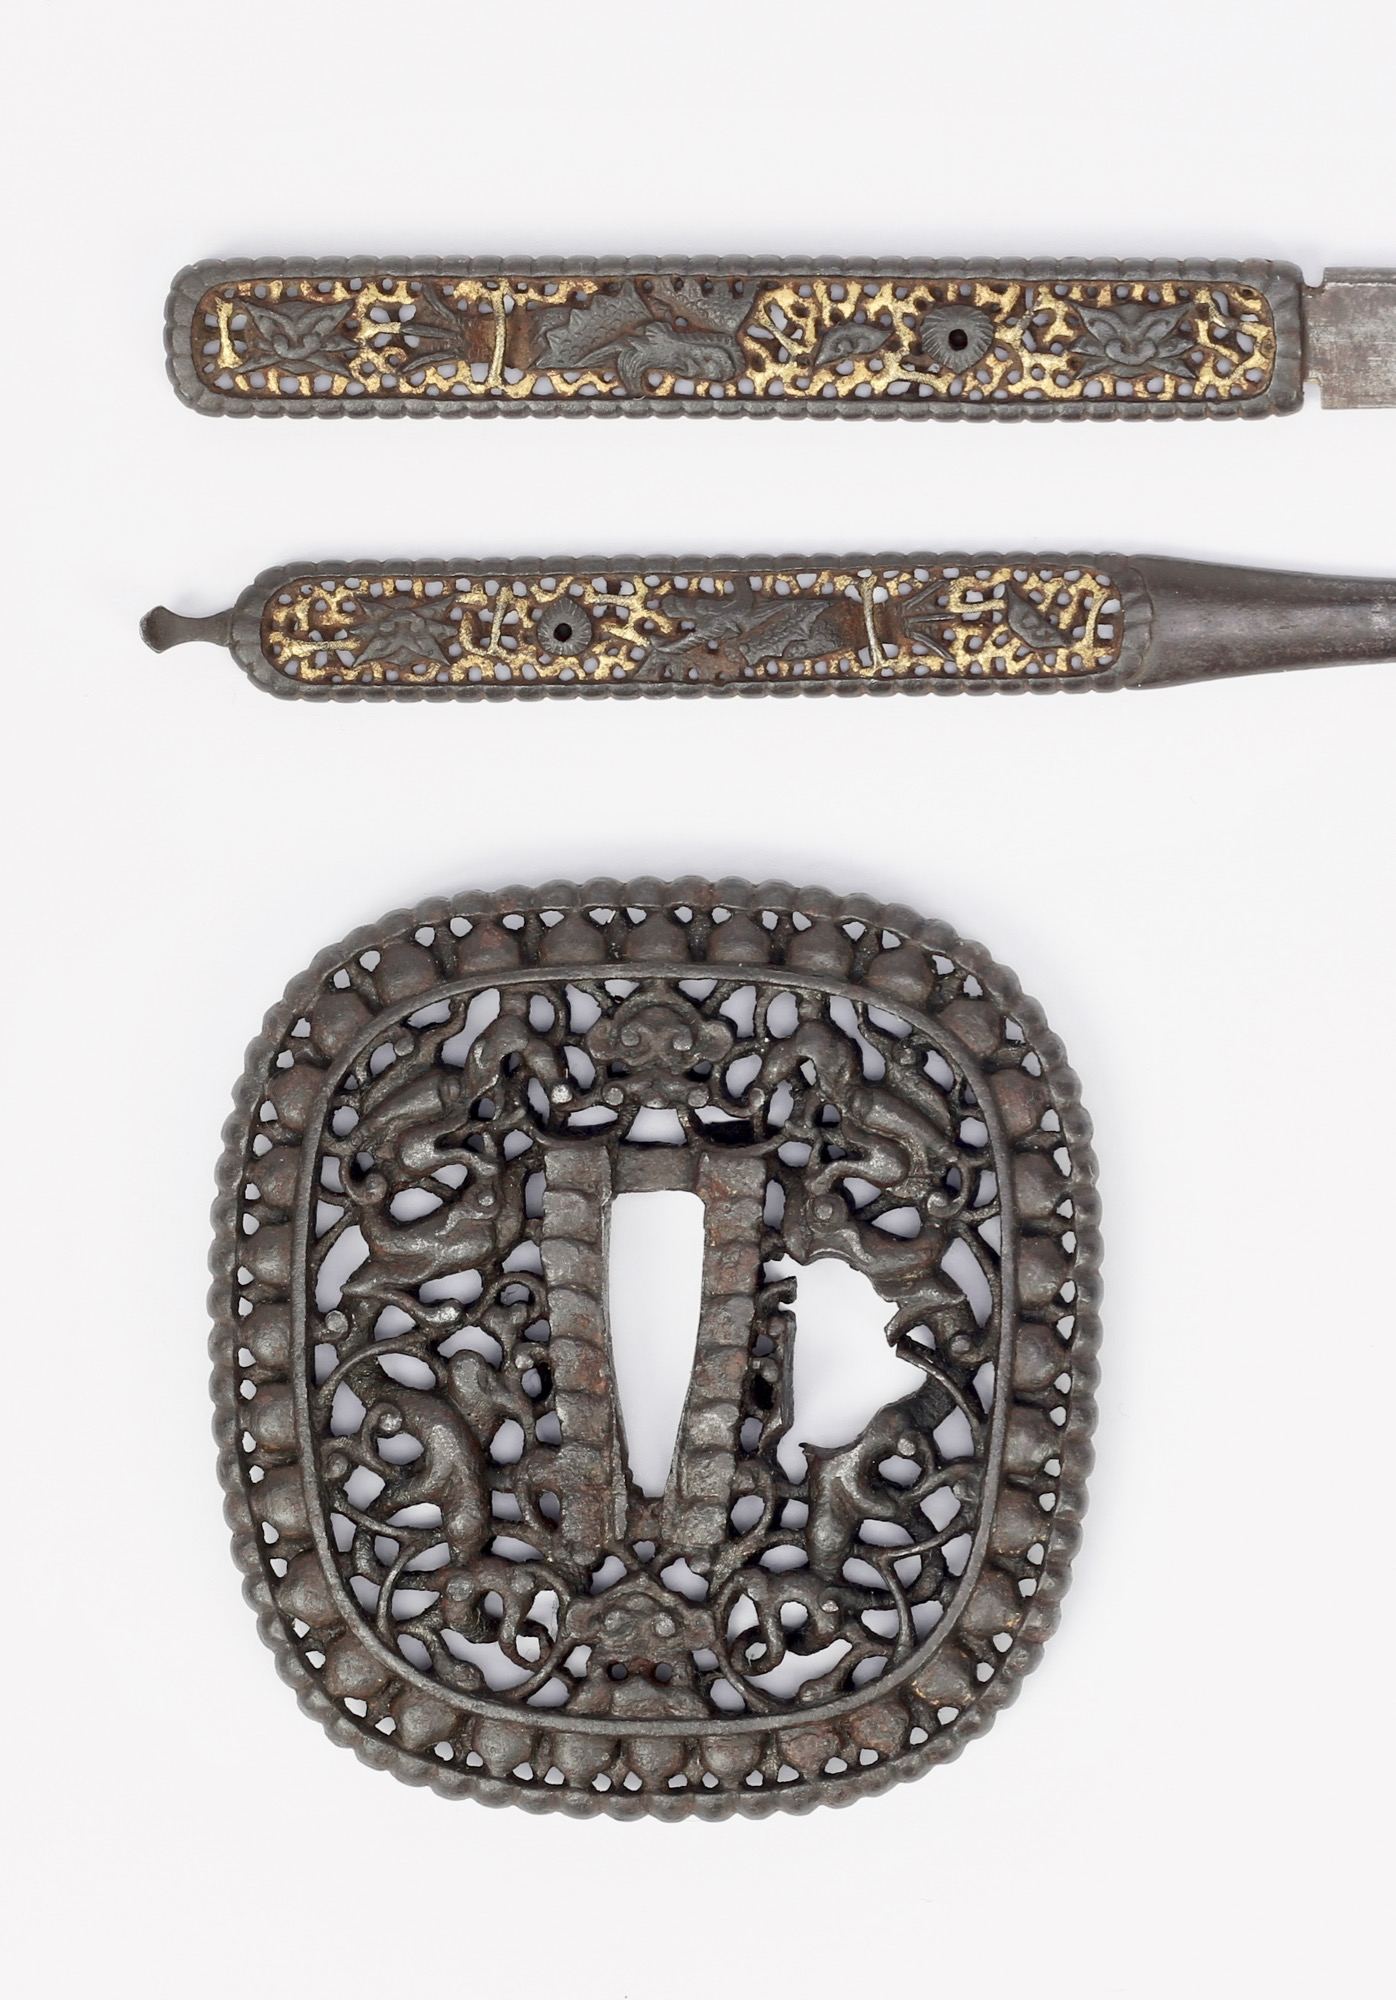 A unique set of nanban style kogai and kozuka, jointly called futakoromono. Compared to their inspiration, a Chinese imported guard.